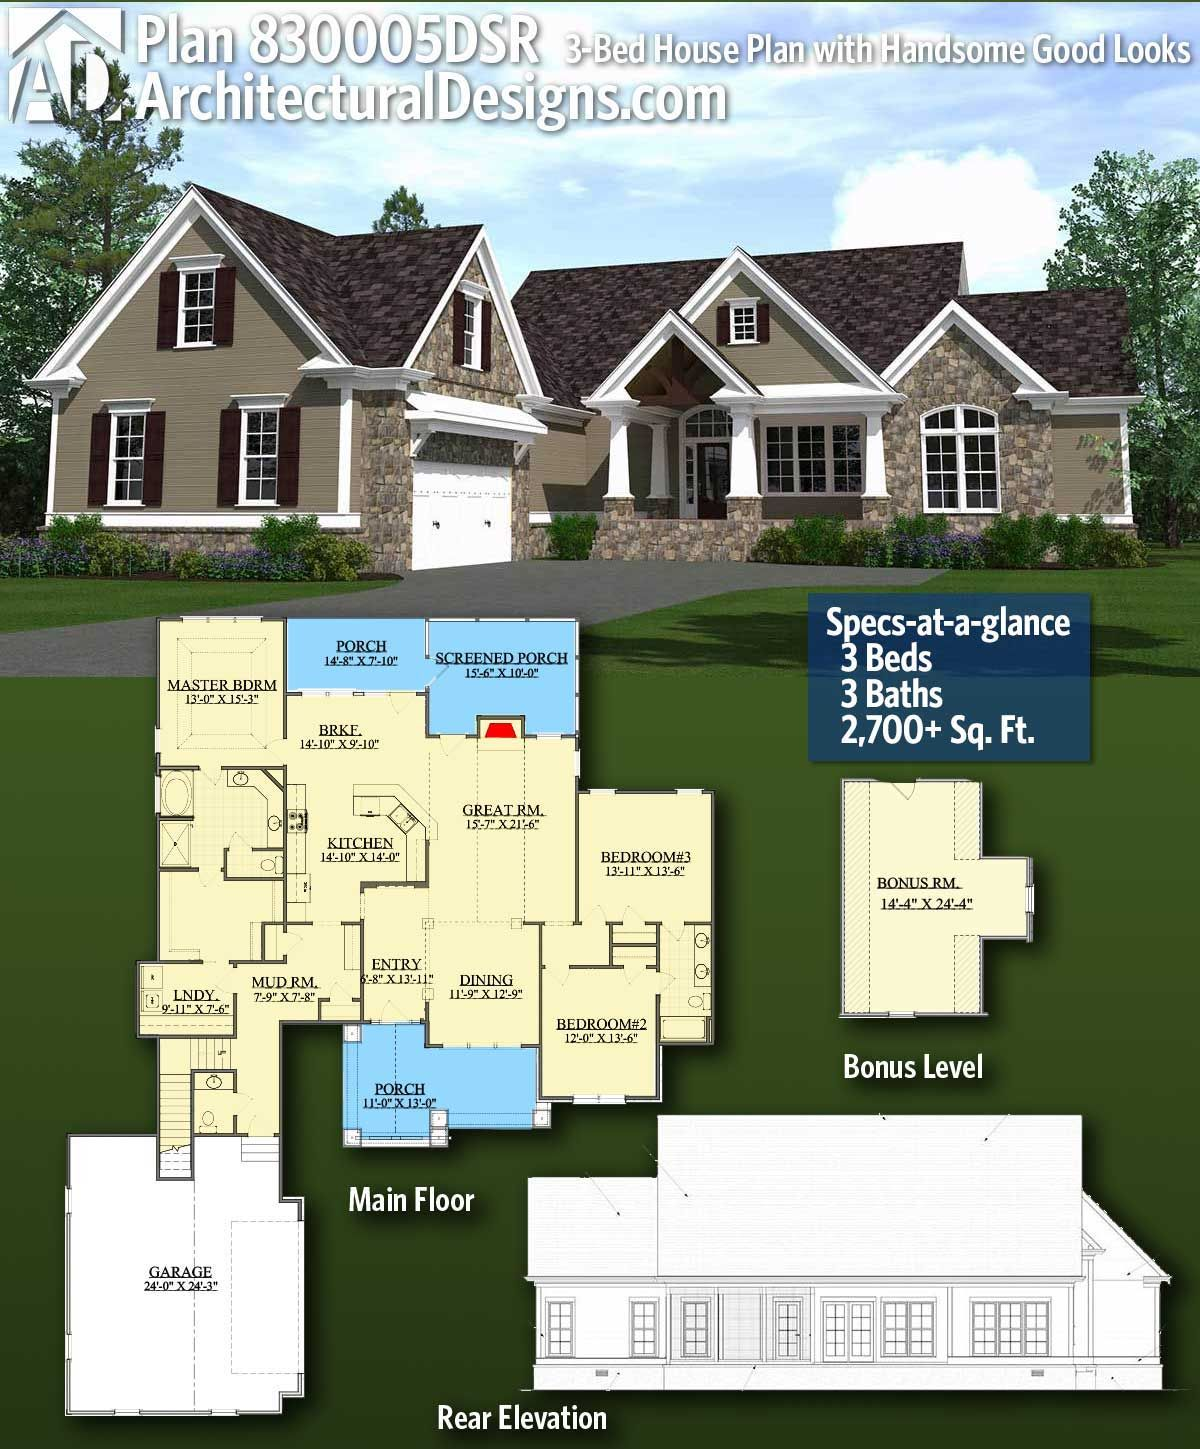 Plan 14632rk Rugged Craftsman With Room Over Garage: Plan 830005DSR: Handsome Good Looks In 2019